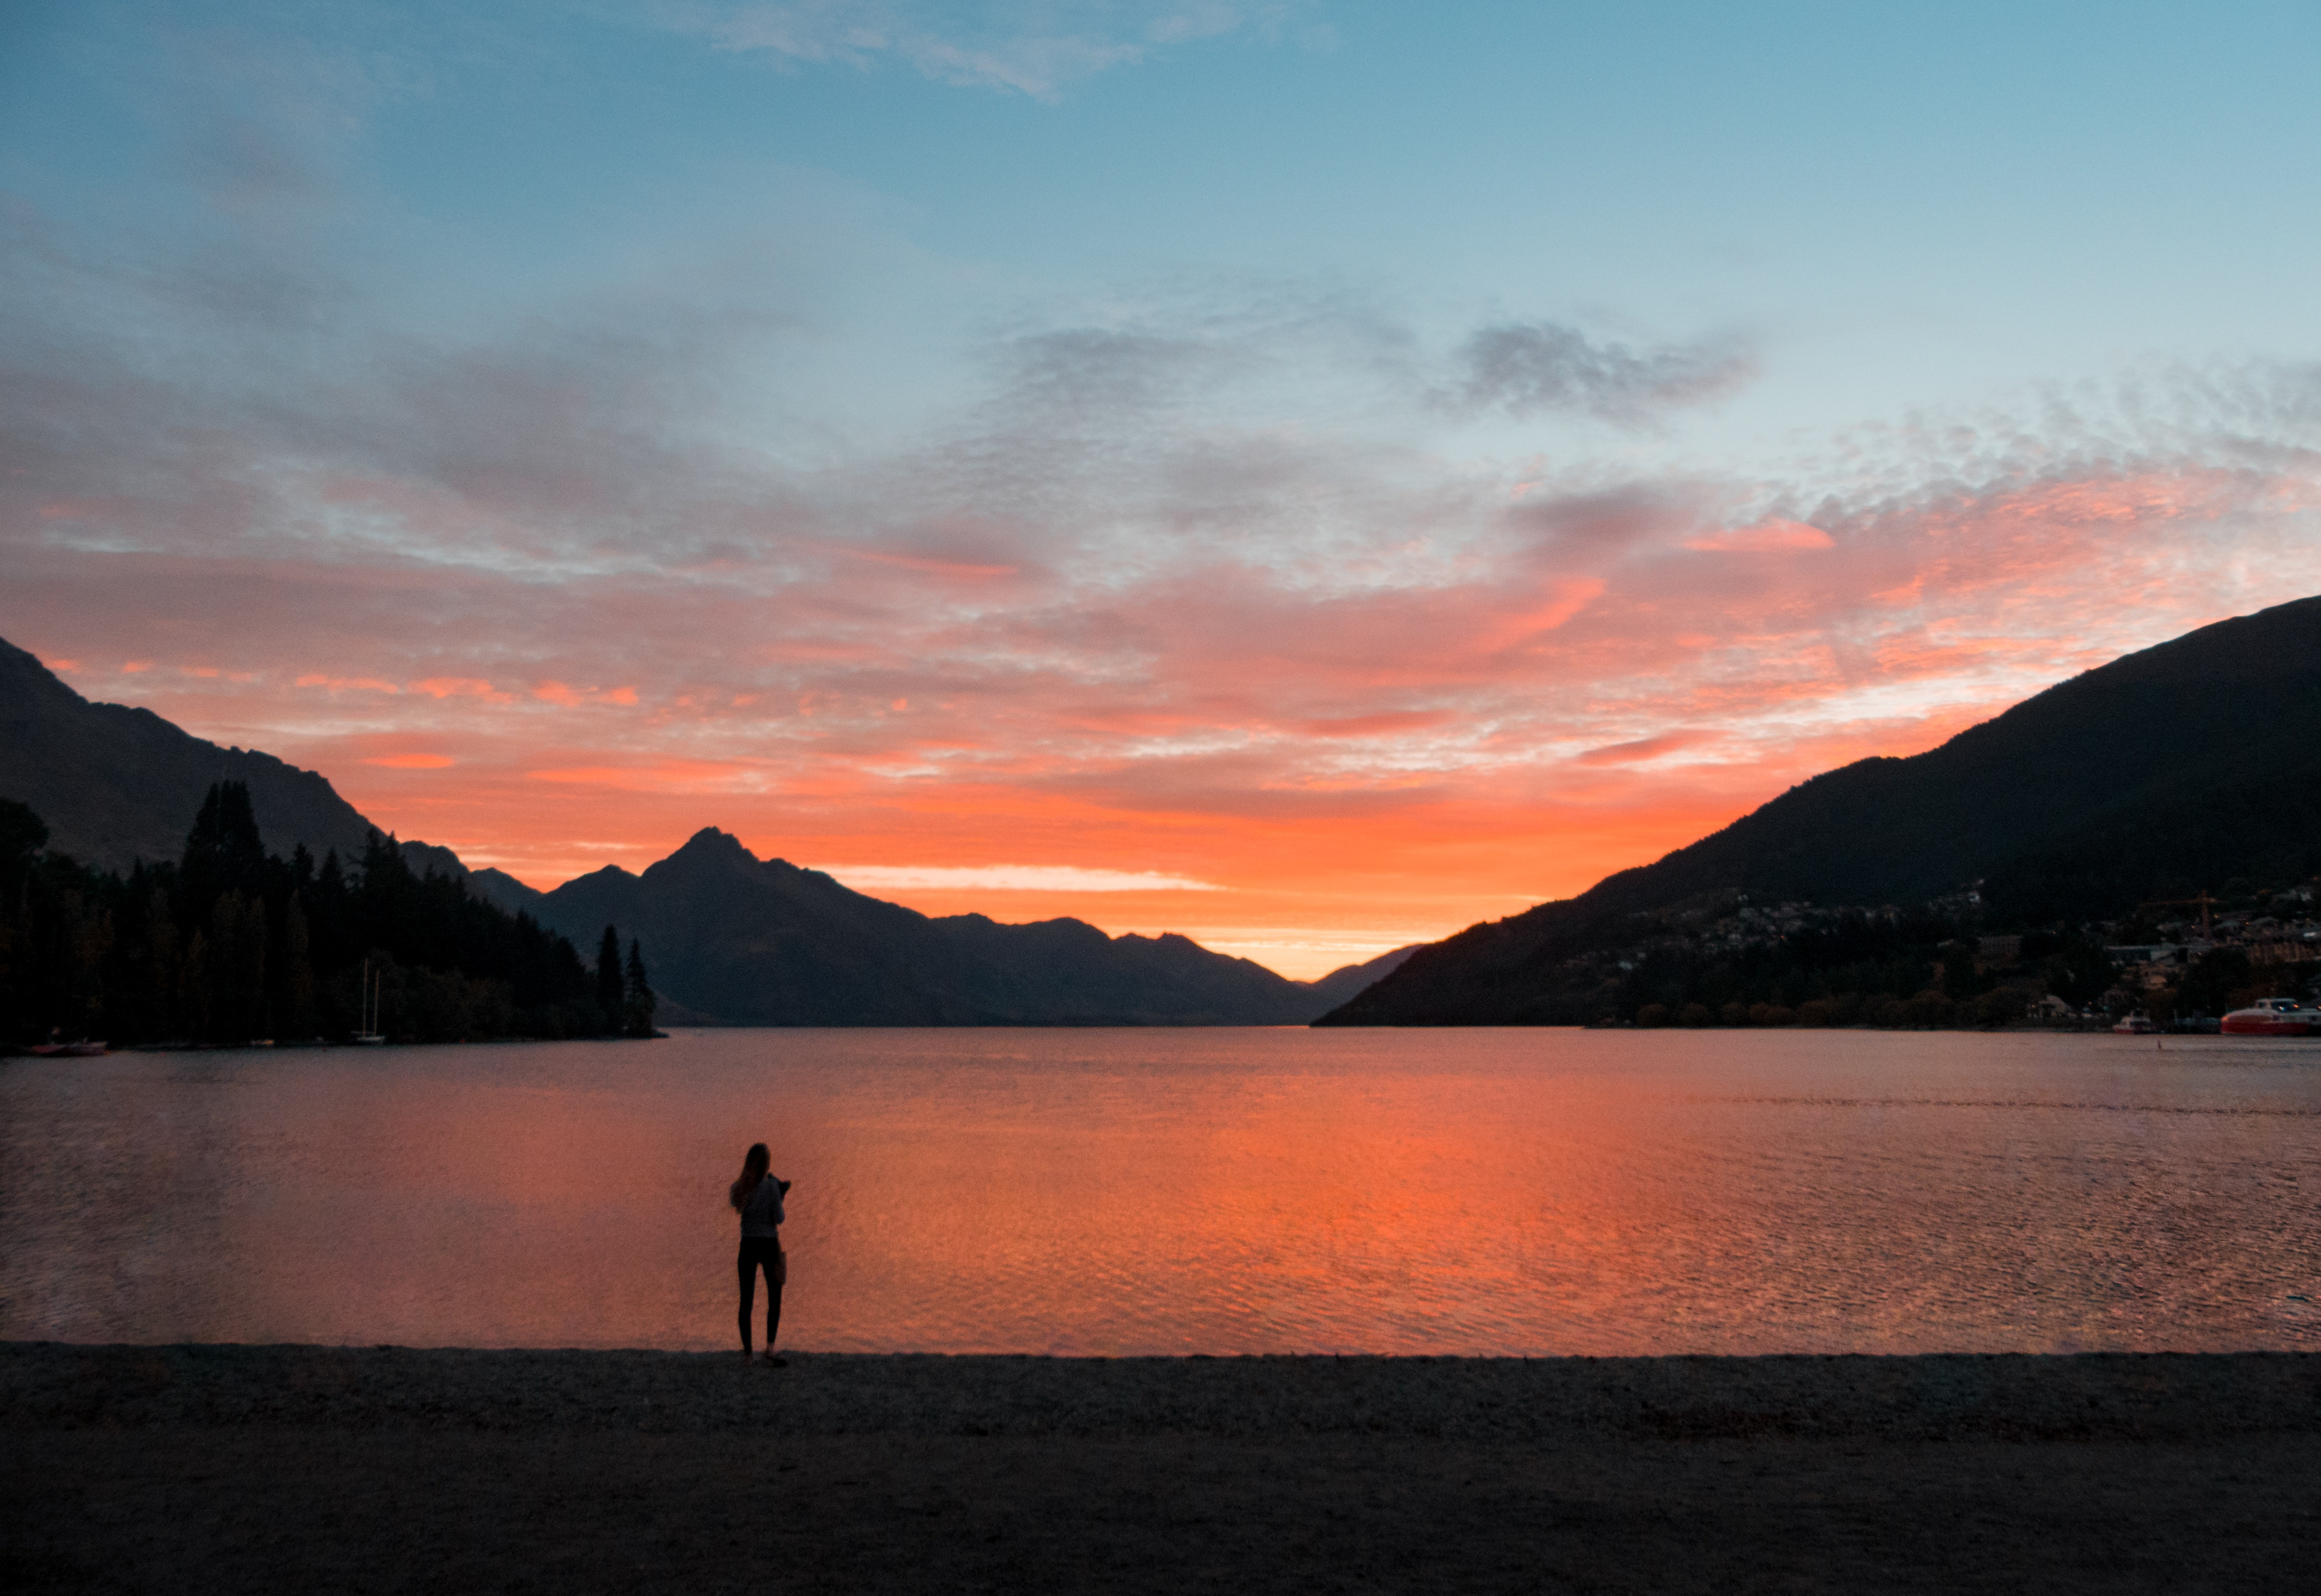 Silhouette photo of person standing near body of water